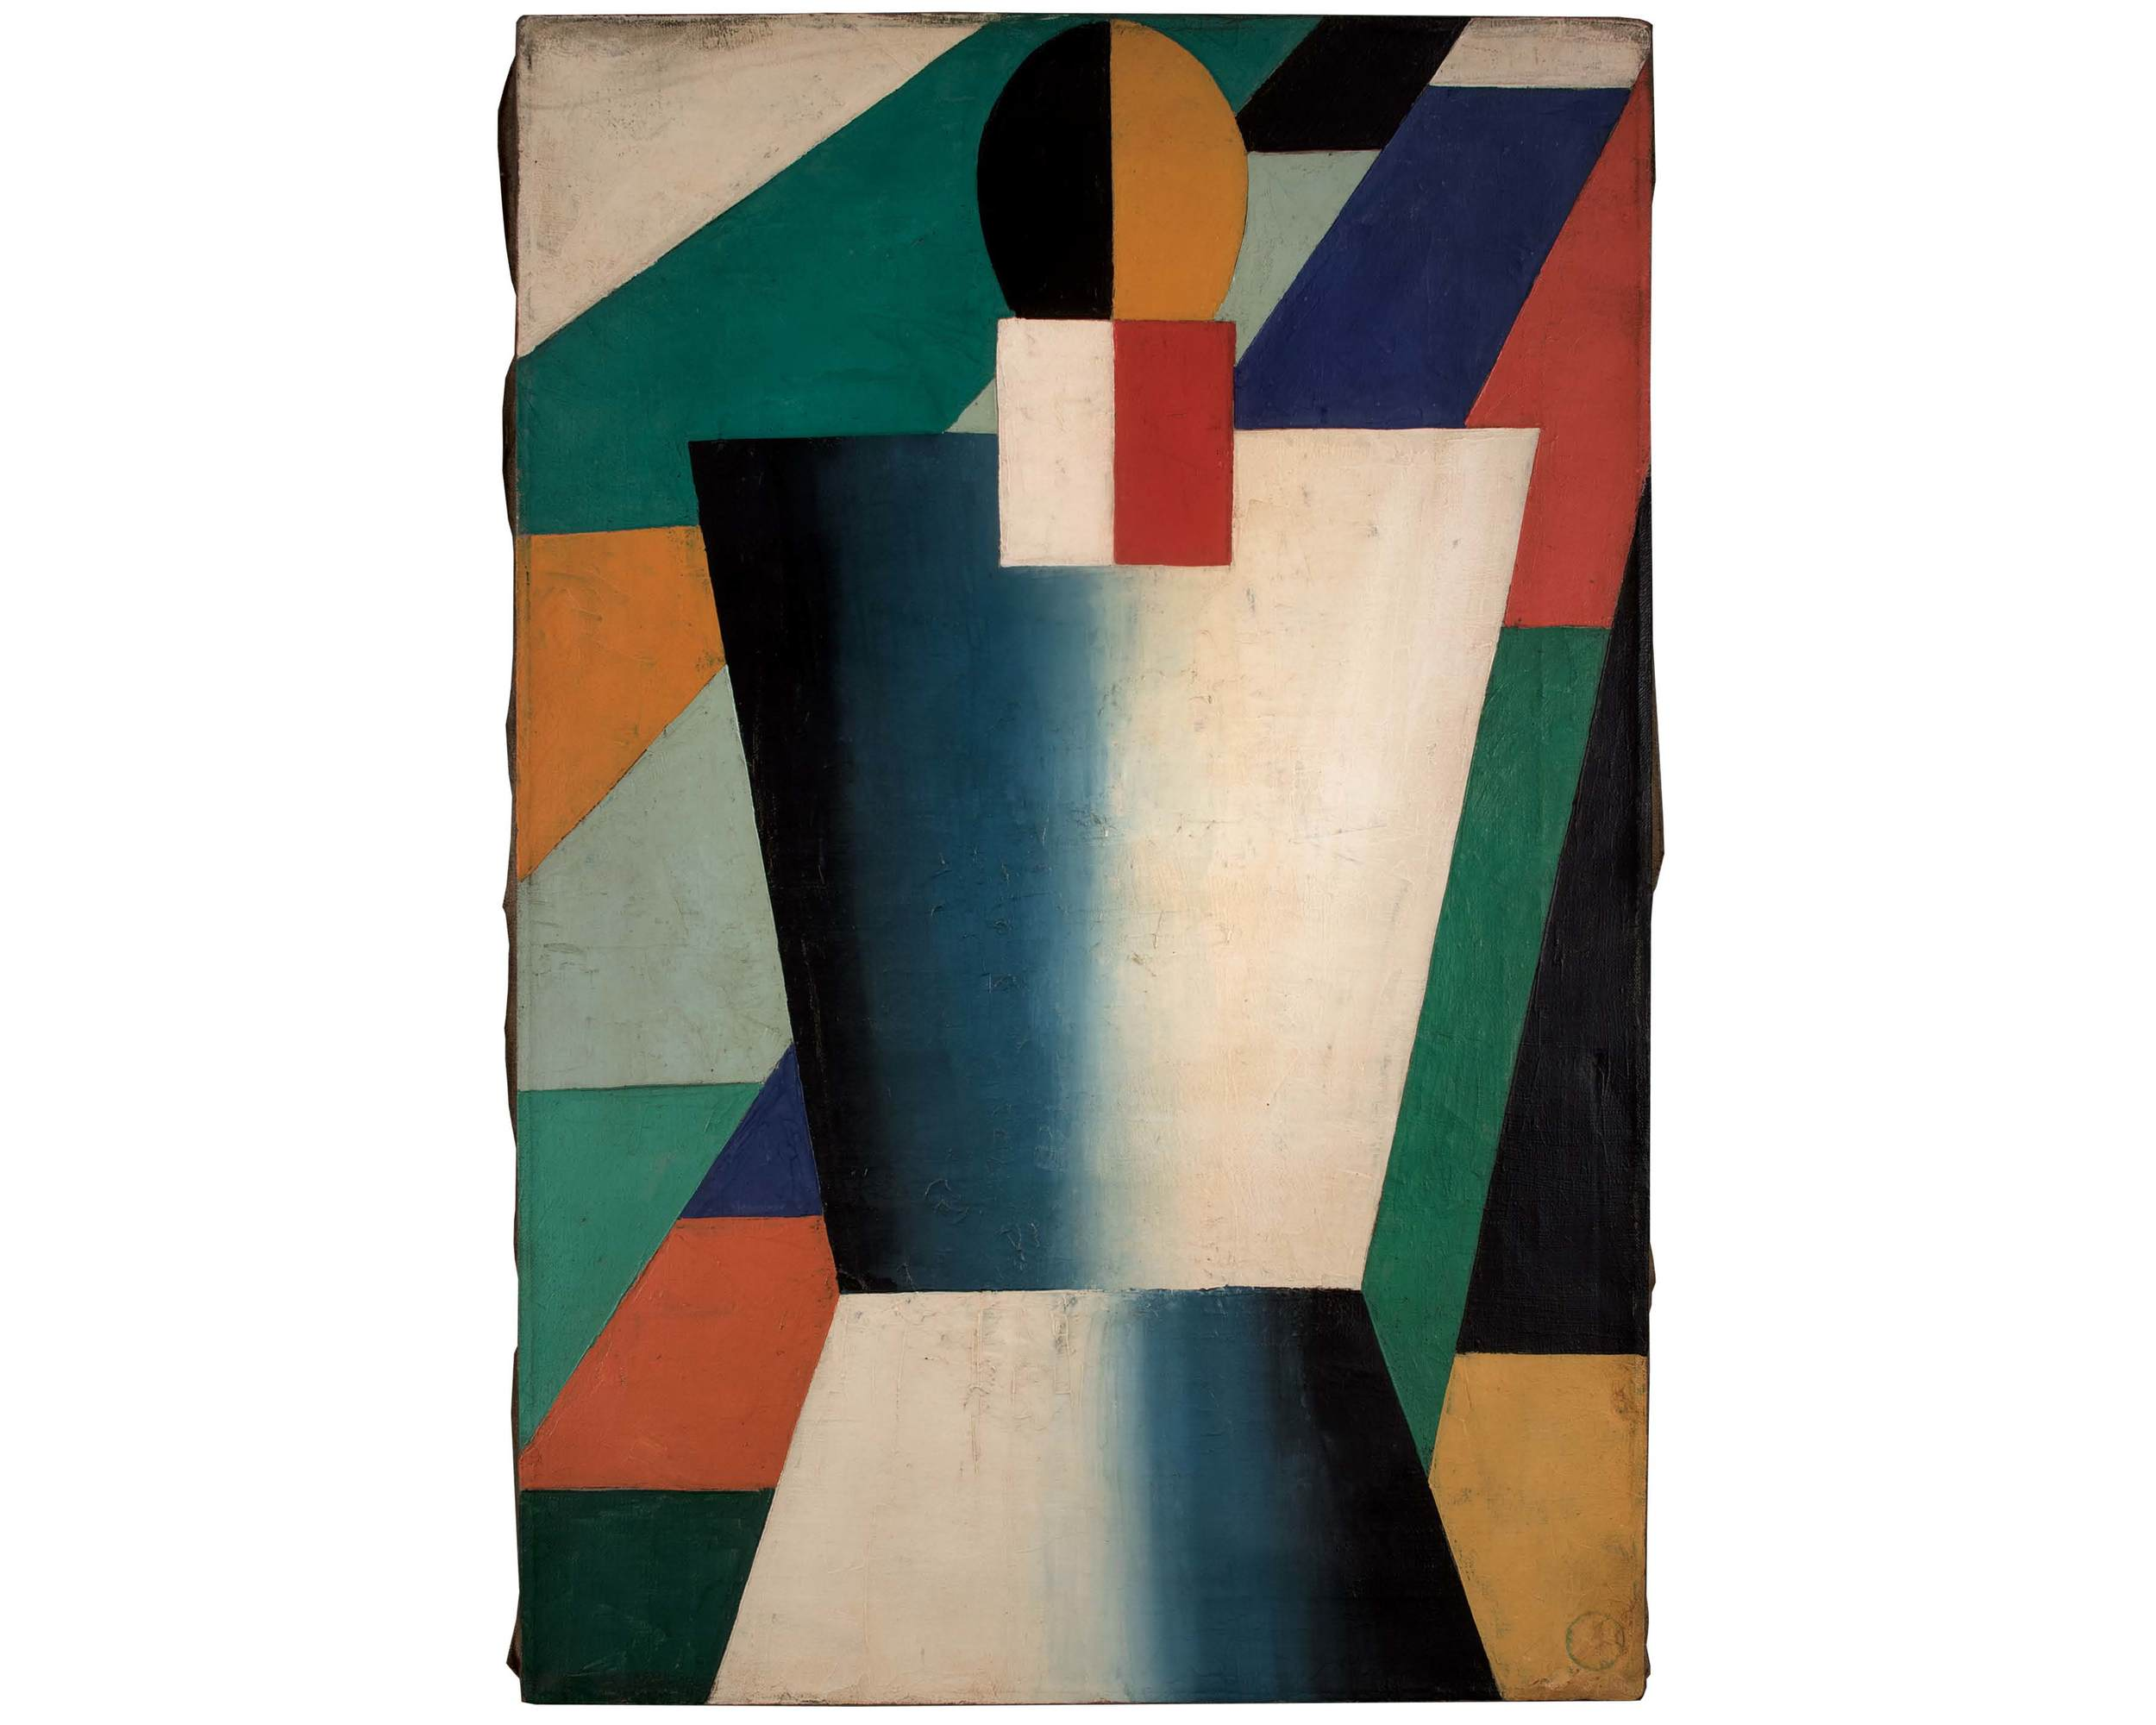 Unattributed. Unsigned. In the style of Kasimir Malevich.